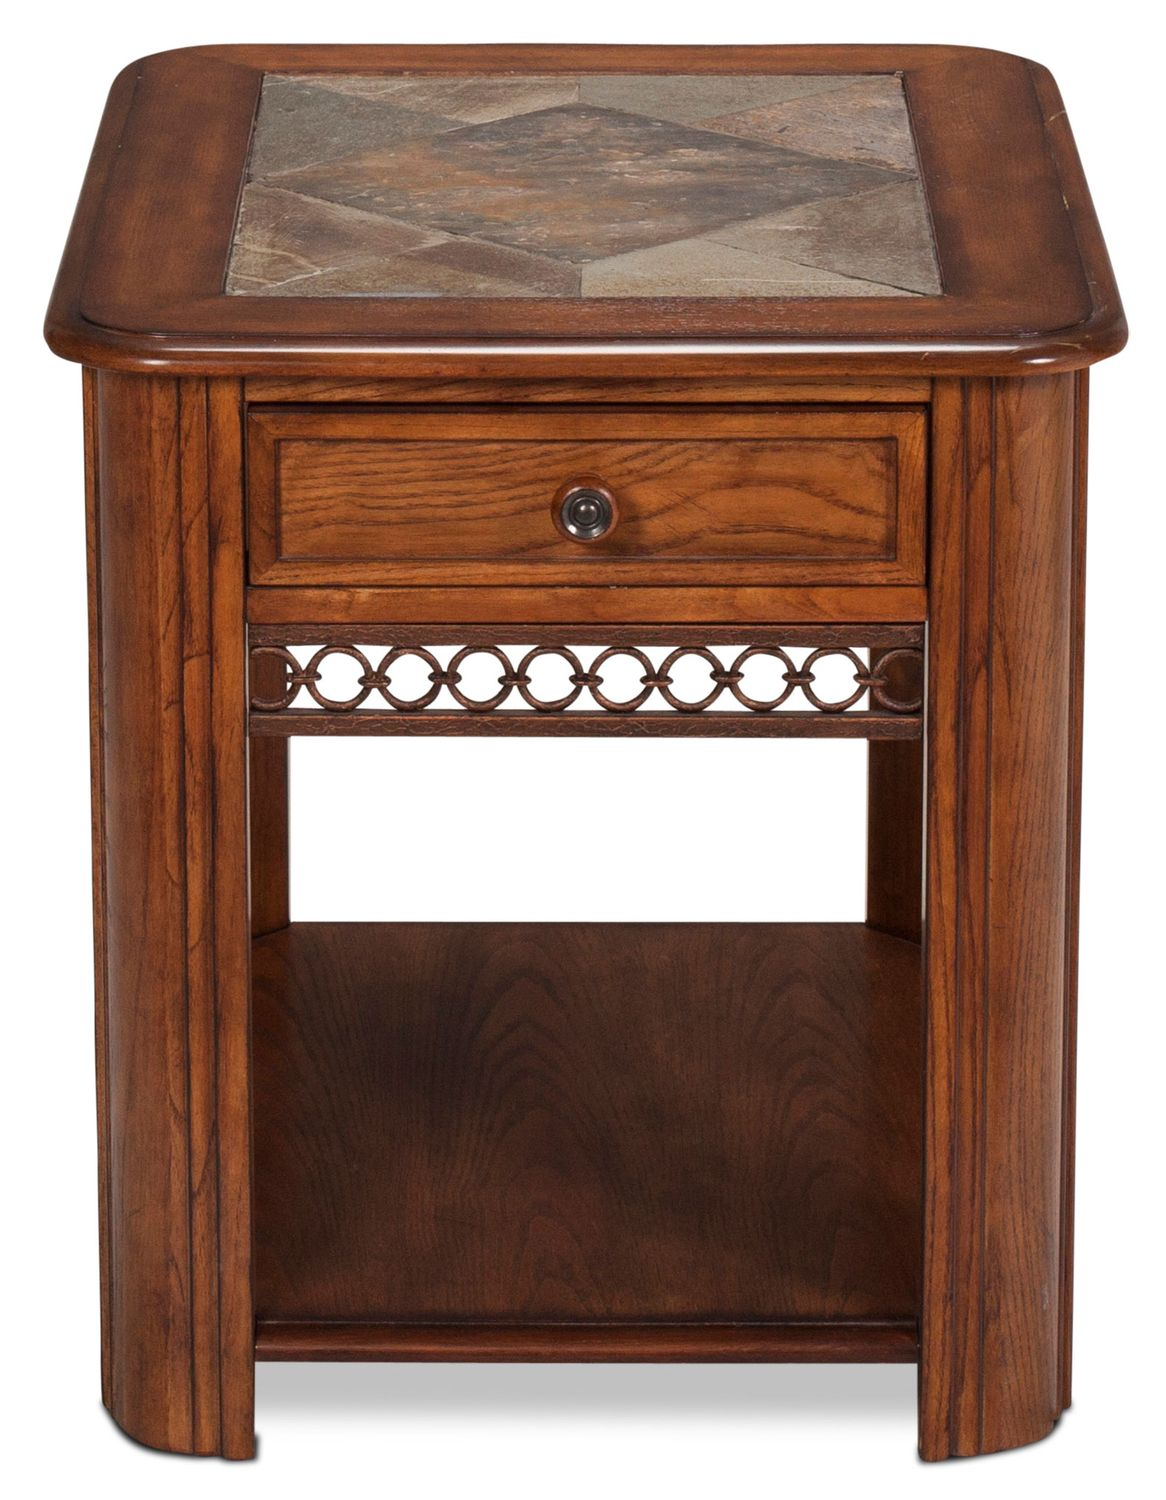 madison end table oak accent and occasional furniture front porch chairs target wood metal side build your own coffee vintage legs casters bathroom wall clock crystal base lamp